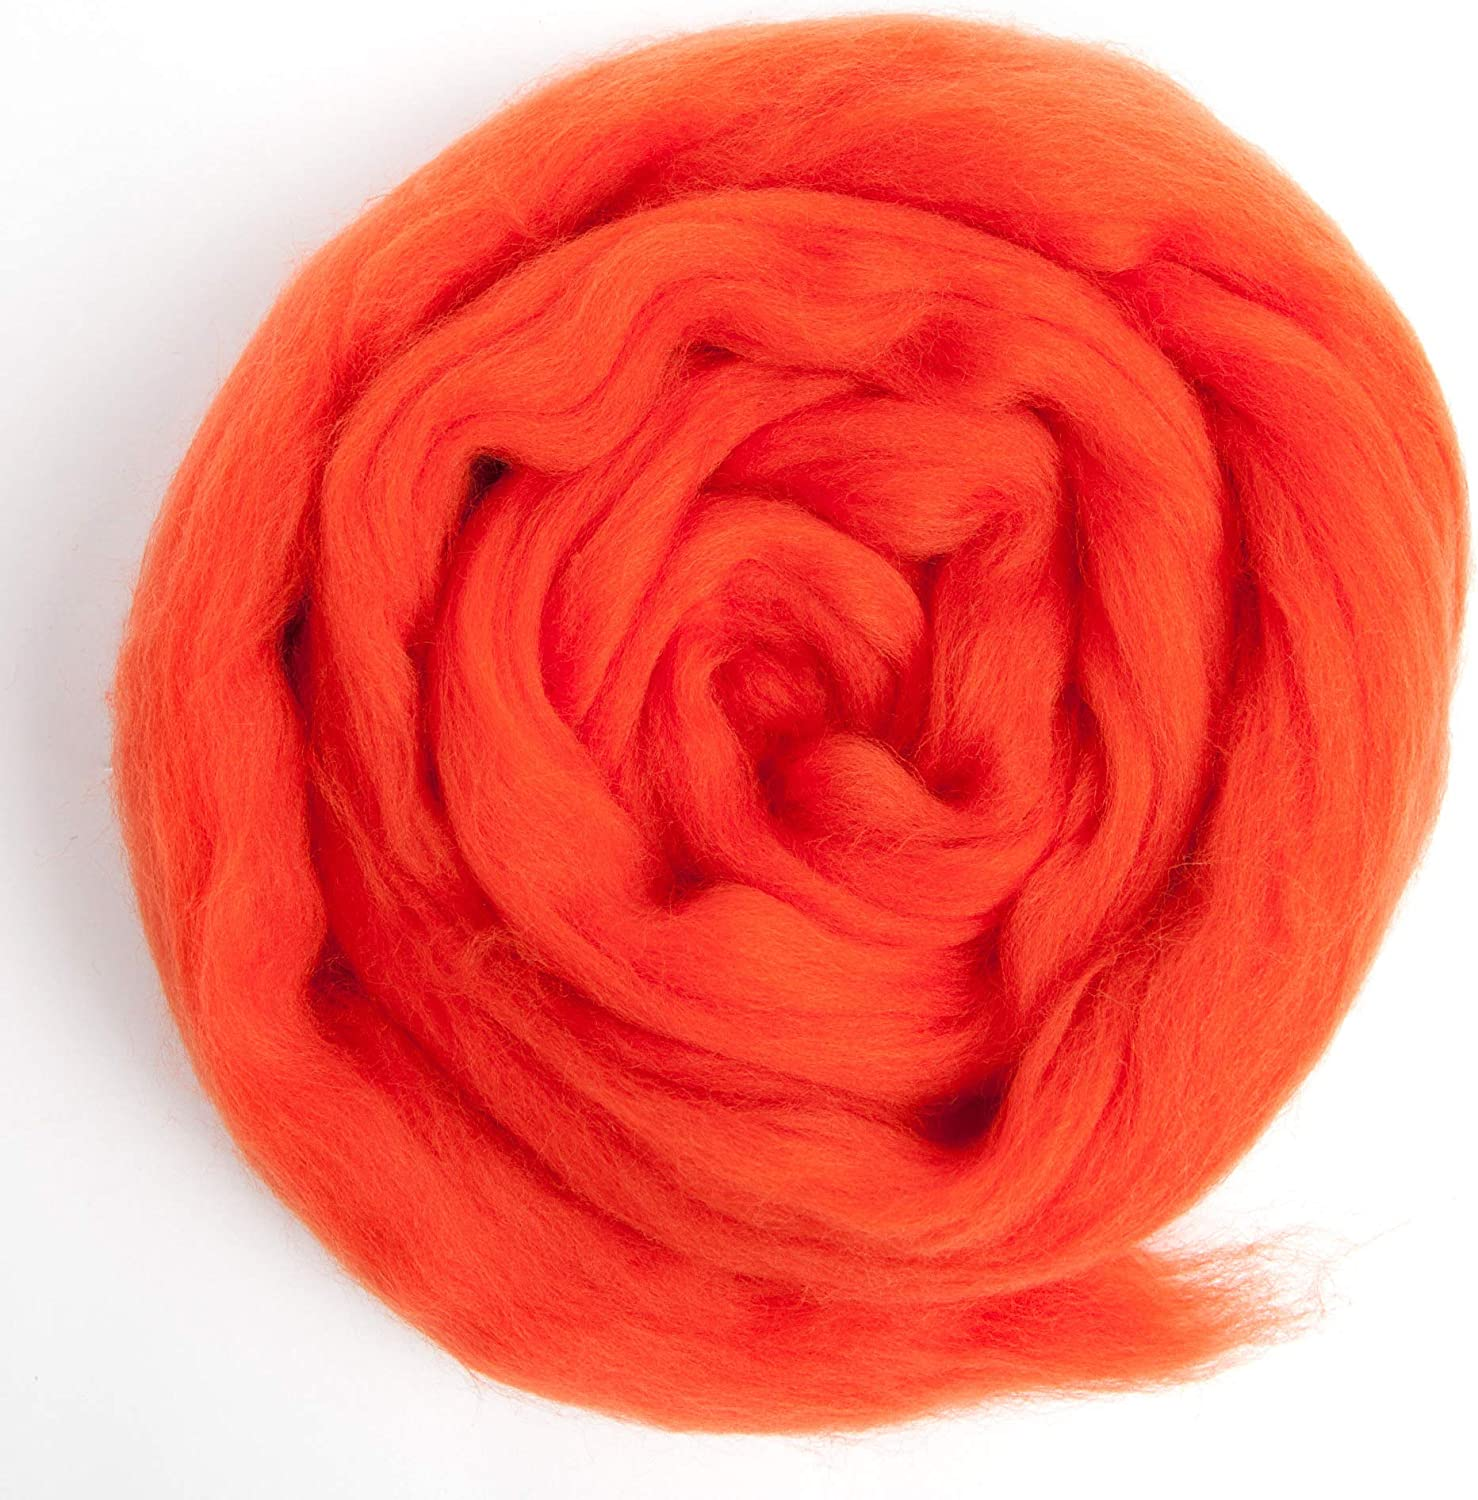 Premium Combed Top Color Yellow 100/% Pure Wool Perfect for Felting Projects Made in The UK Merino Wool Roving 21 Micron